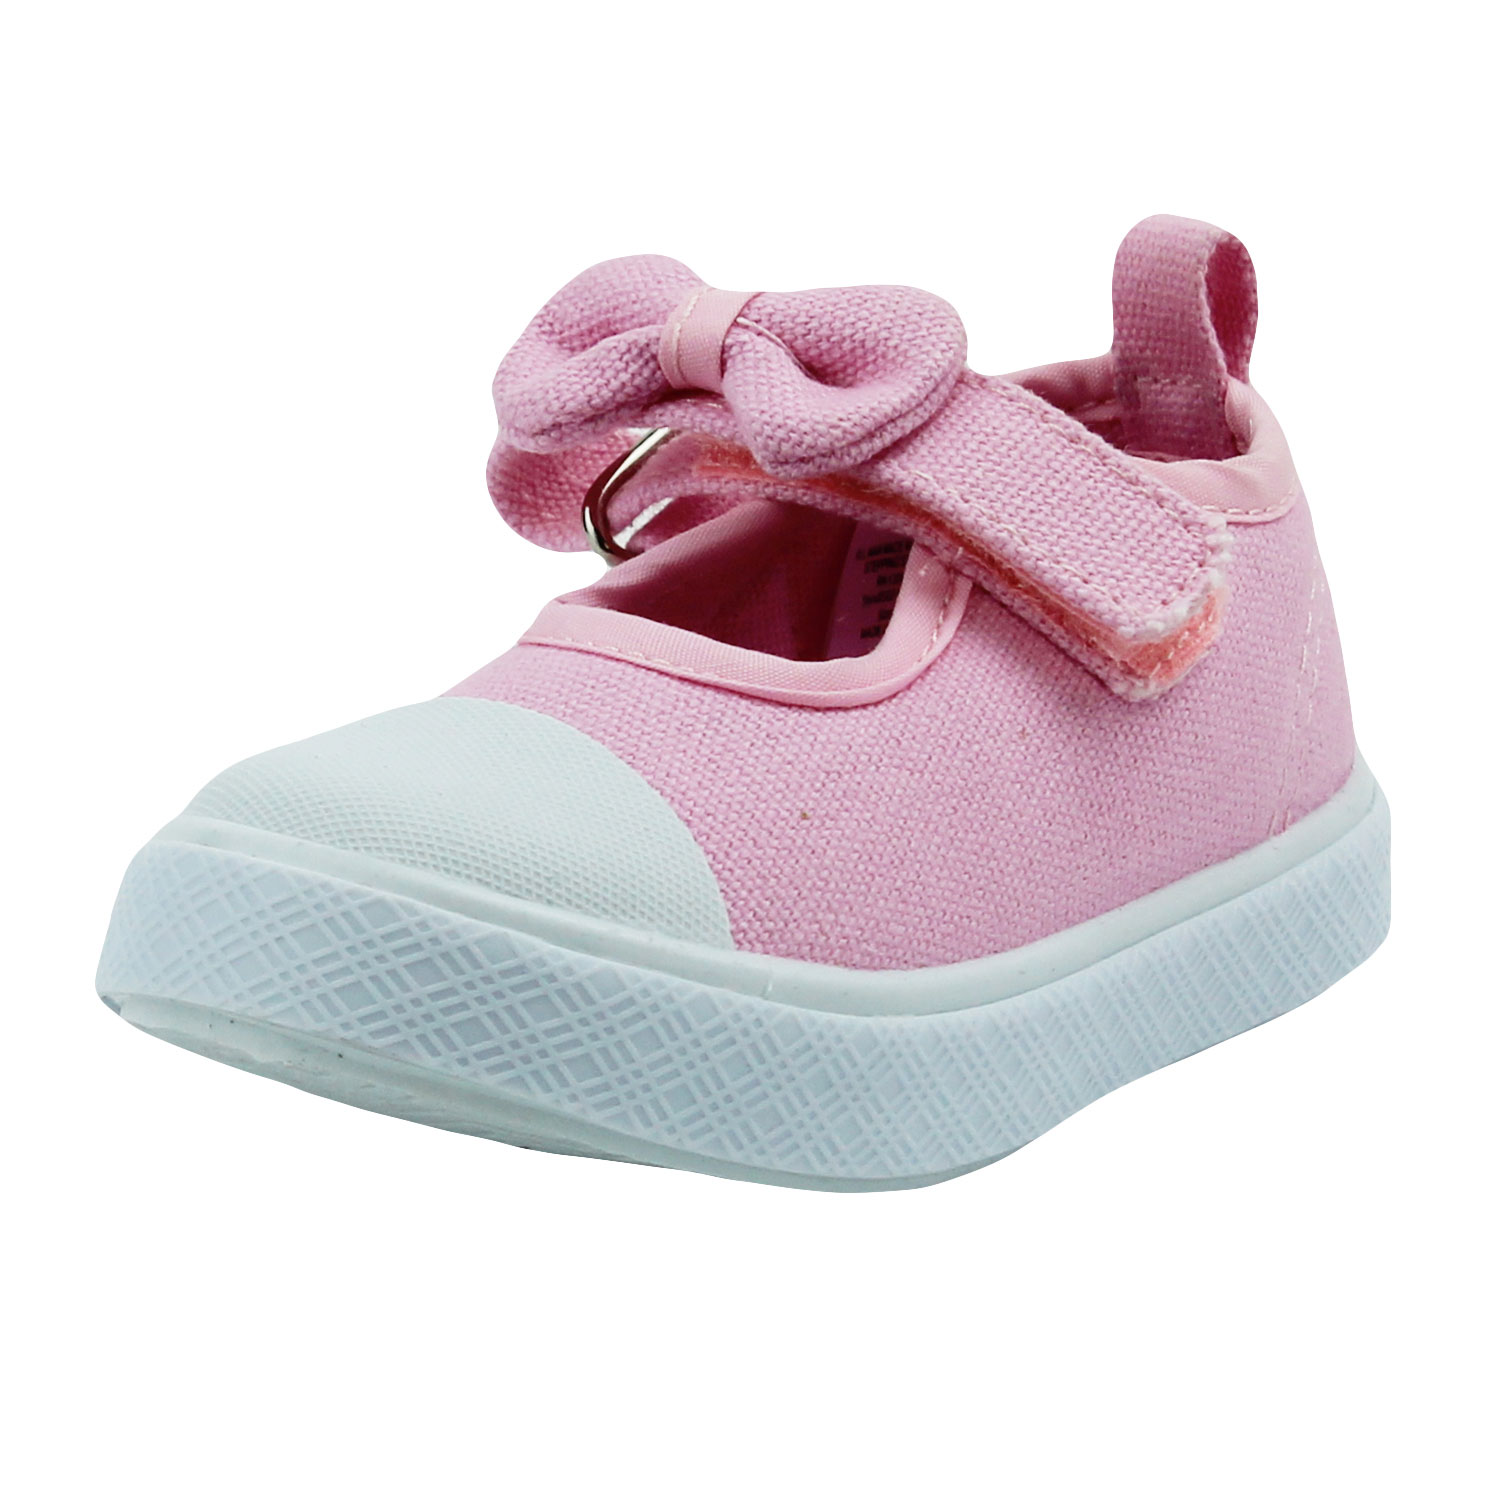 Stepping Stones Newborn Shoes for Baby Girls Pink Canvas Sneakers